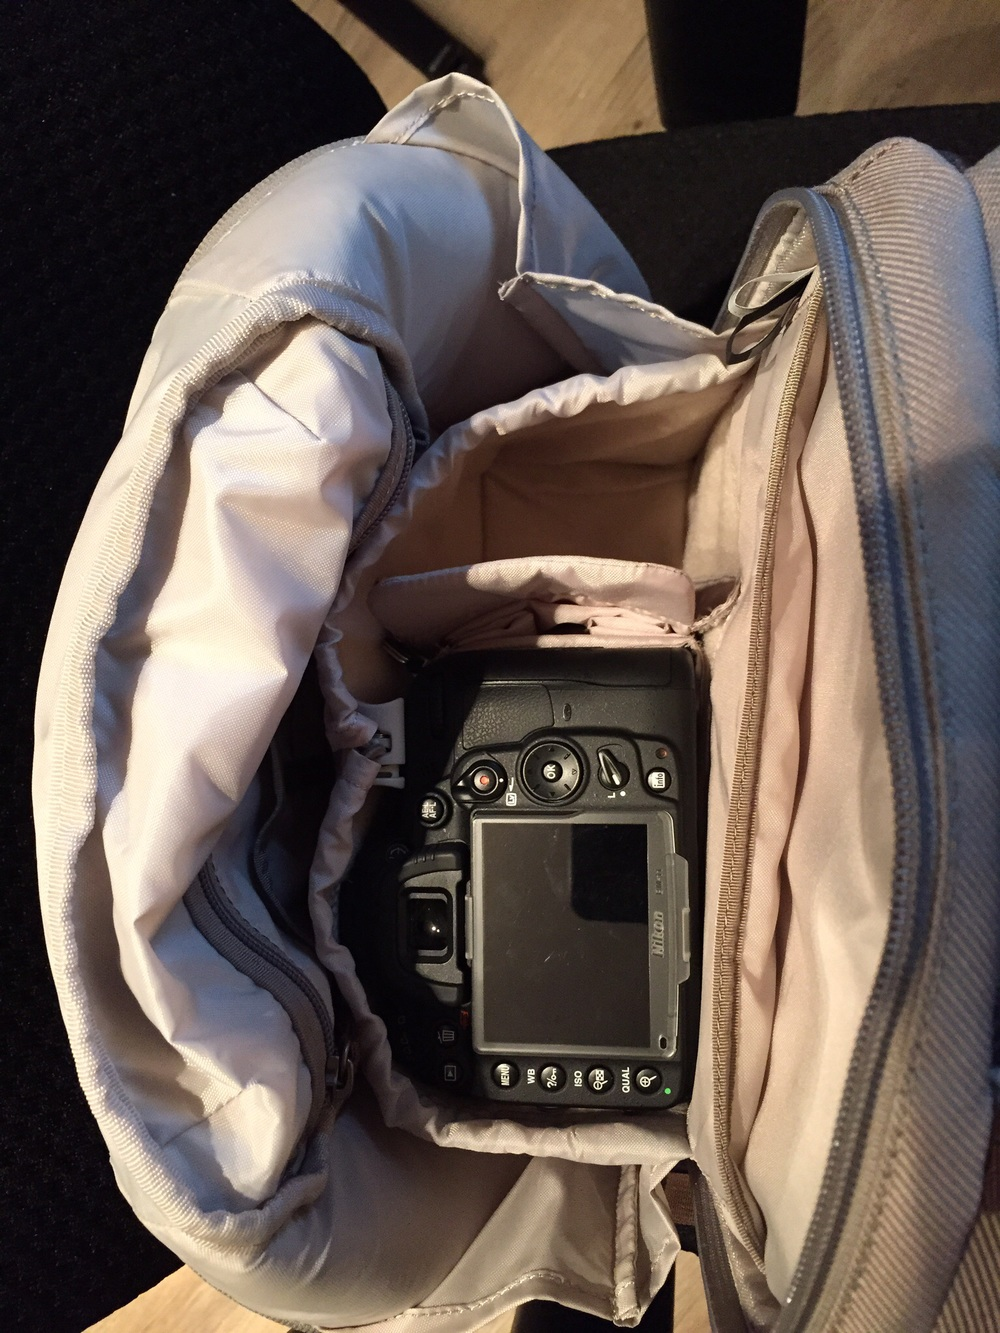 Here's the Nikon D7000 with a Nikkor 35mm attached, face down in the top compartment.